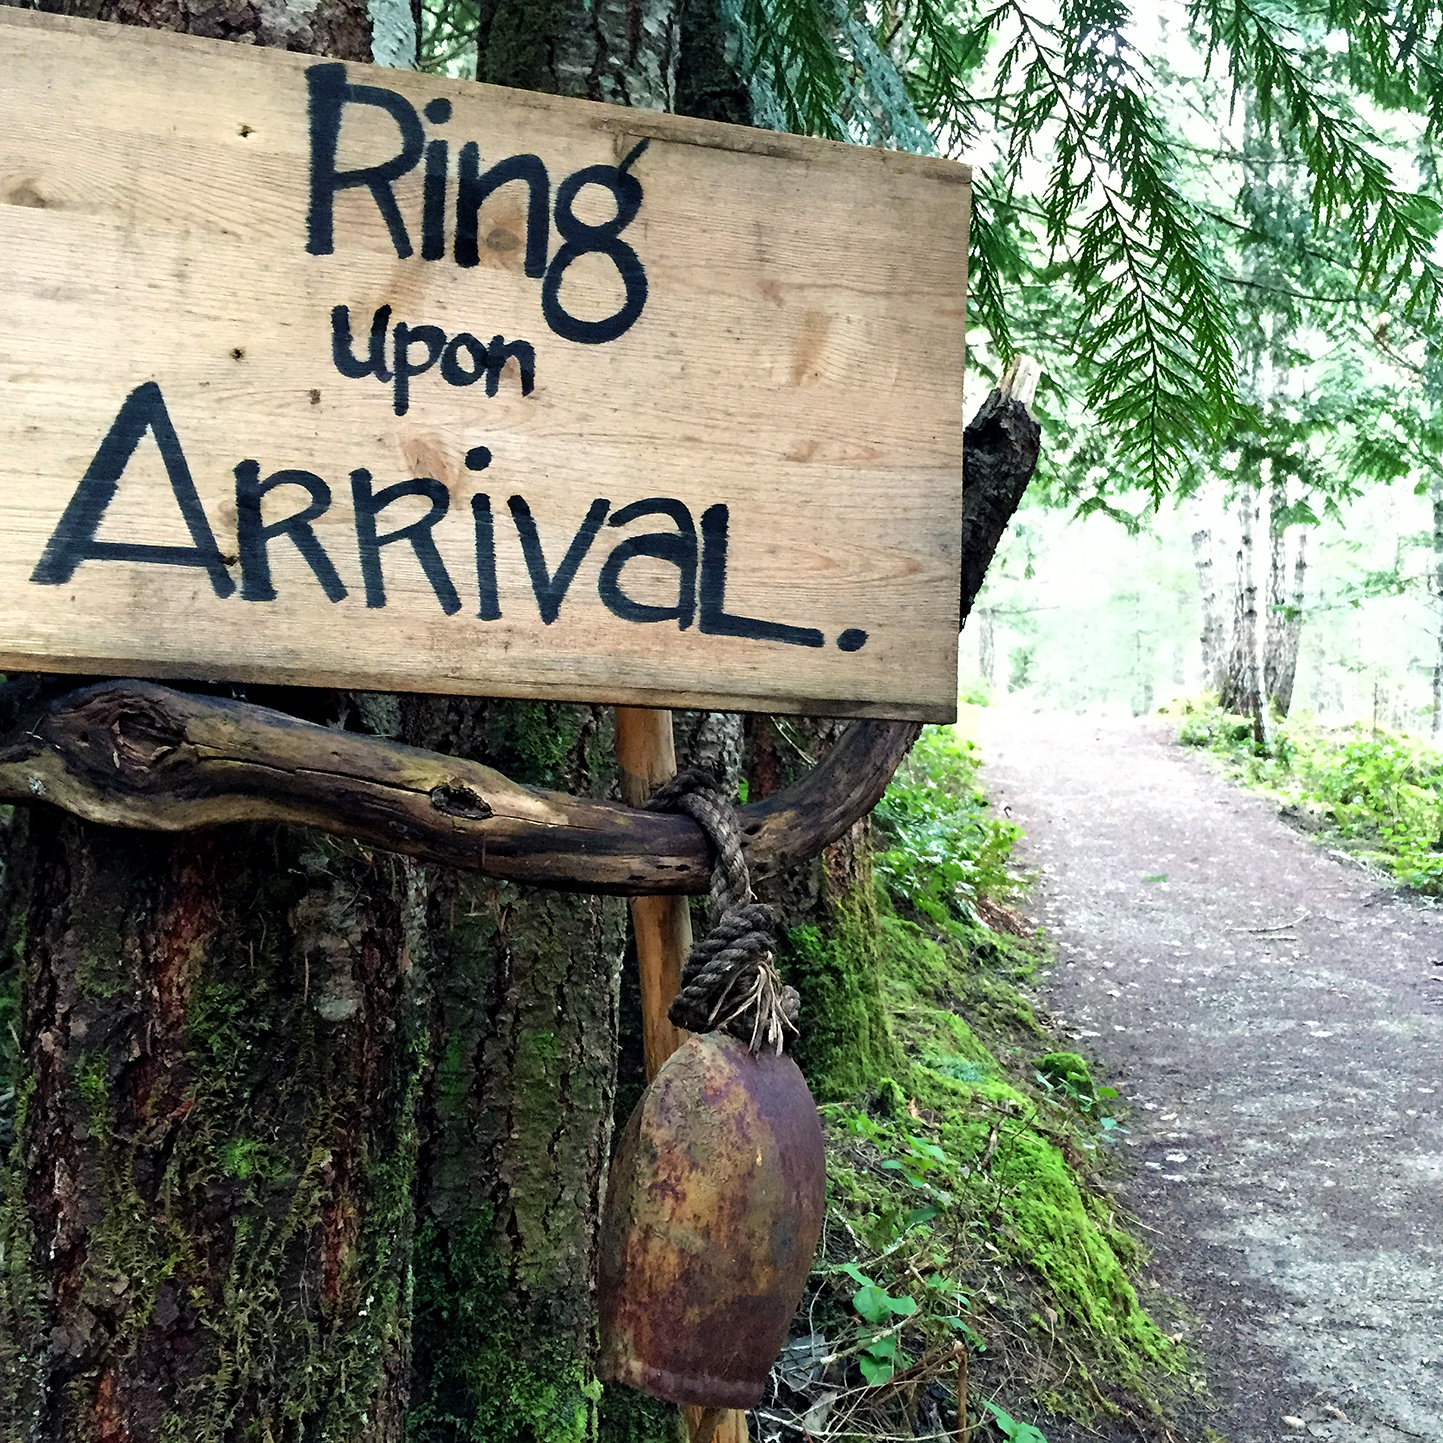 So quiet in fact, that you must ring upon arrival so not to sneak up on those who may be at one with nature.